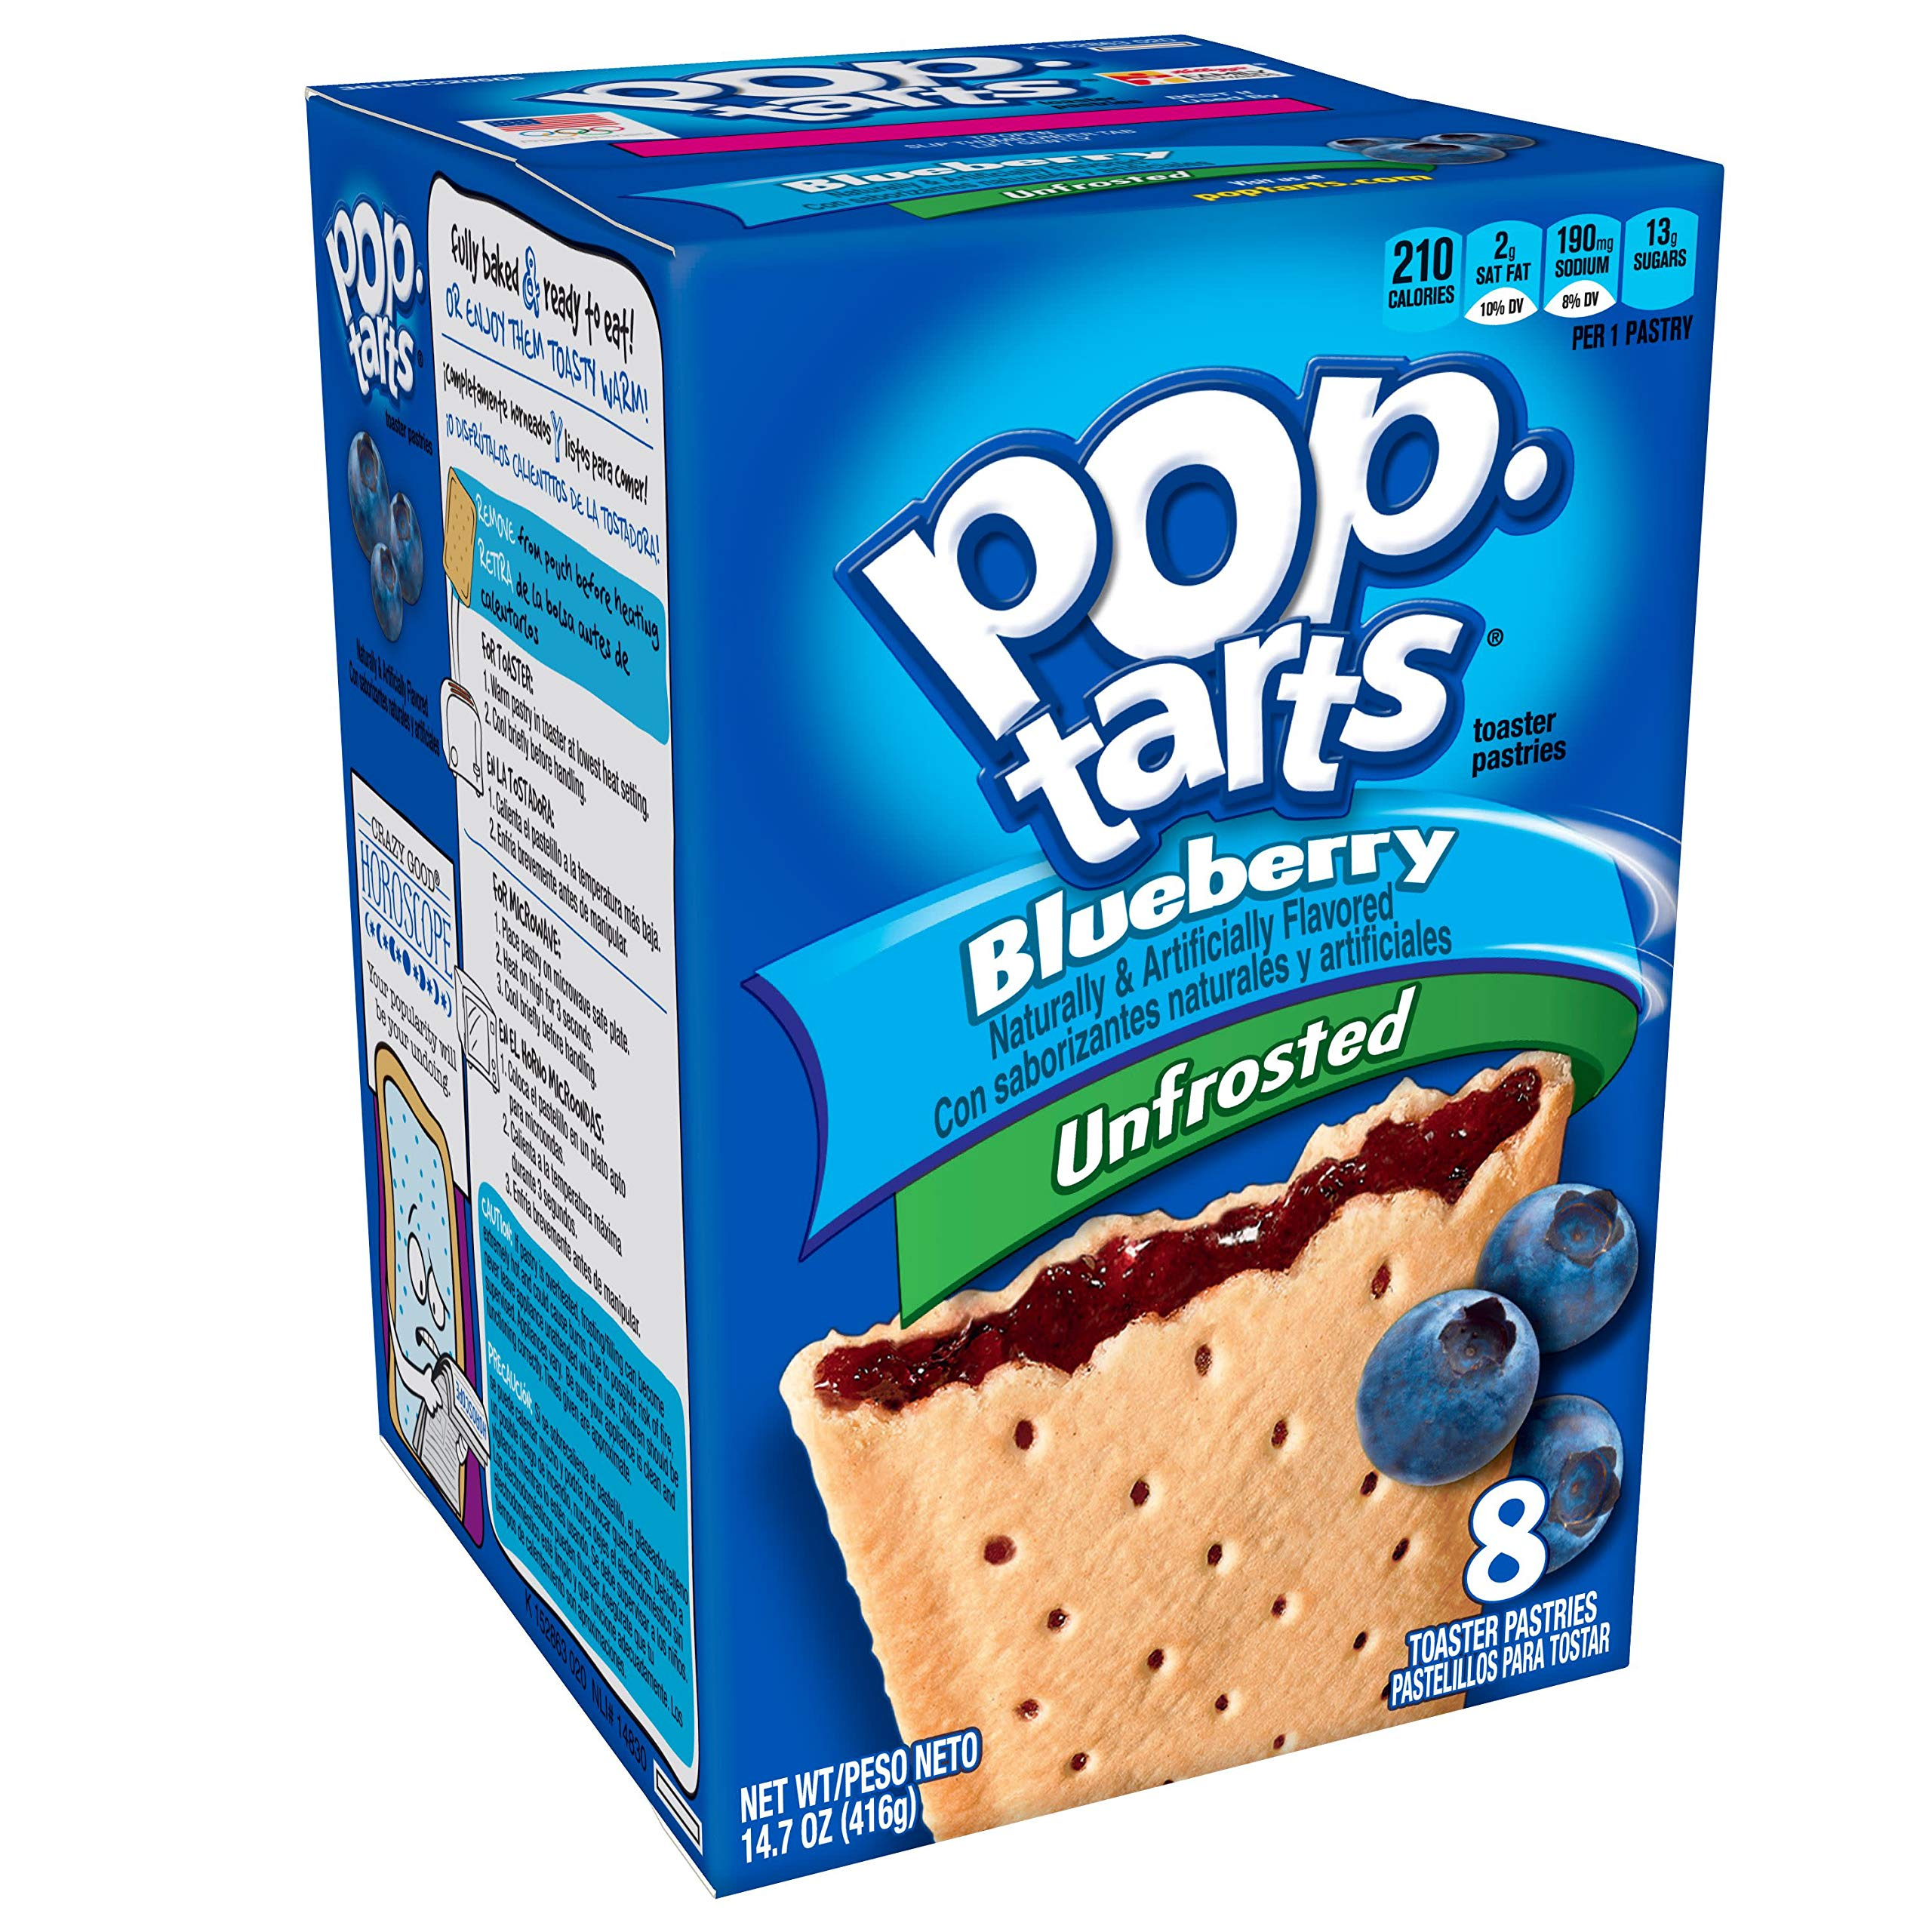 Pop-Tarts Breakfast Toaster Pastries, Unfrosted Blueberry, Bulk Size, 96 Count (Pack of 12, 14.7 oz Boxes)